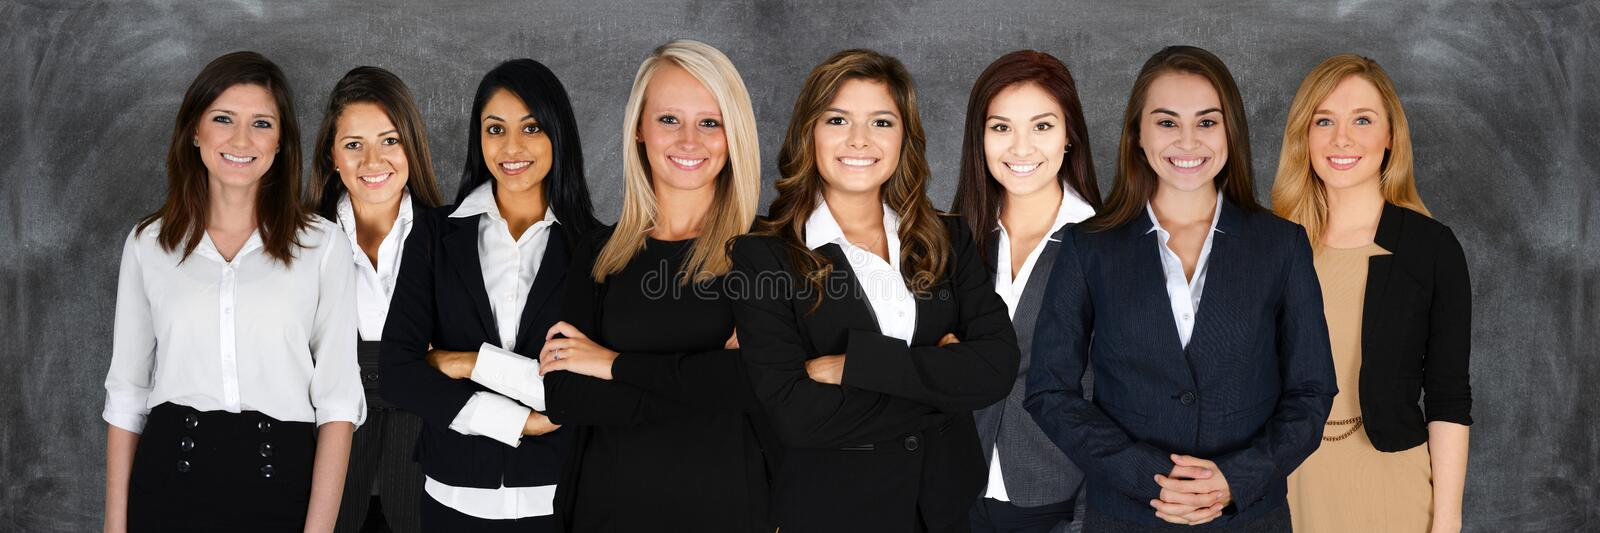 Business Team At Work stock photo